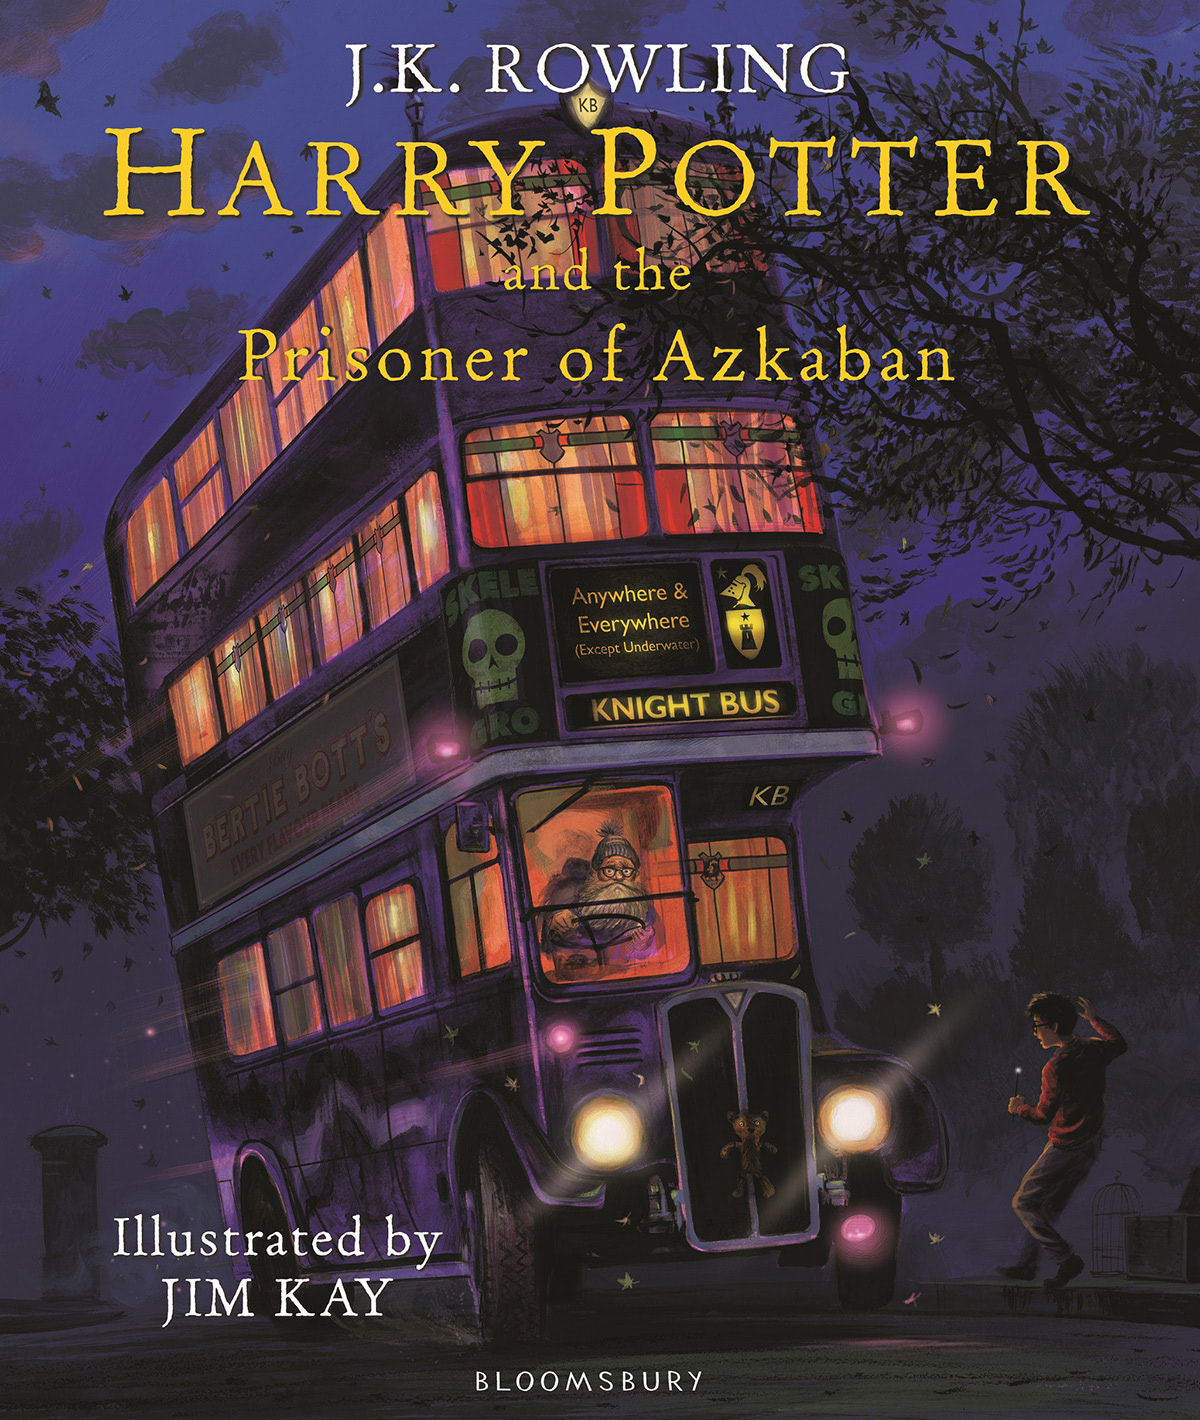 'Prisoner of Azkaban' illustrated edition